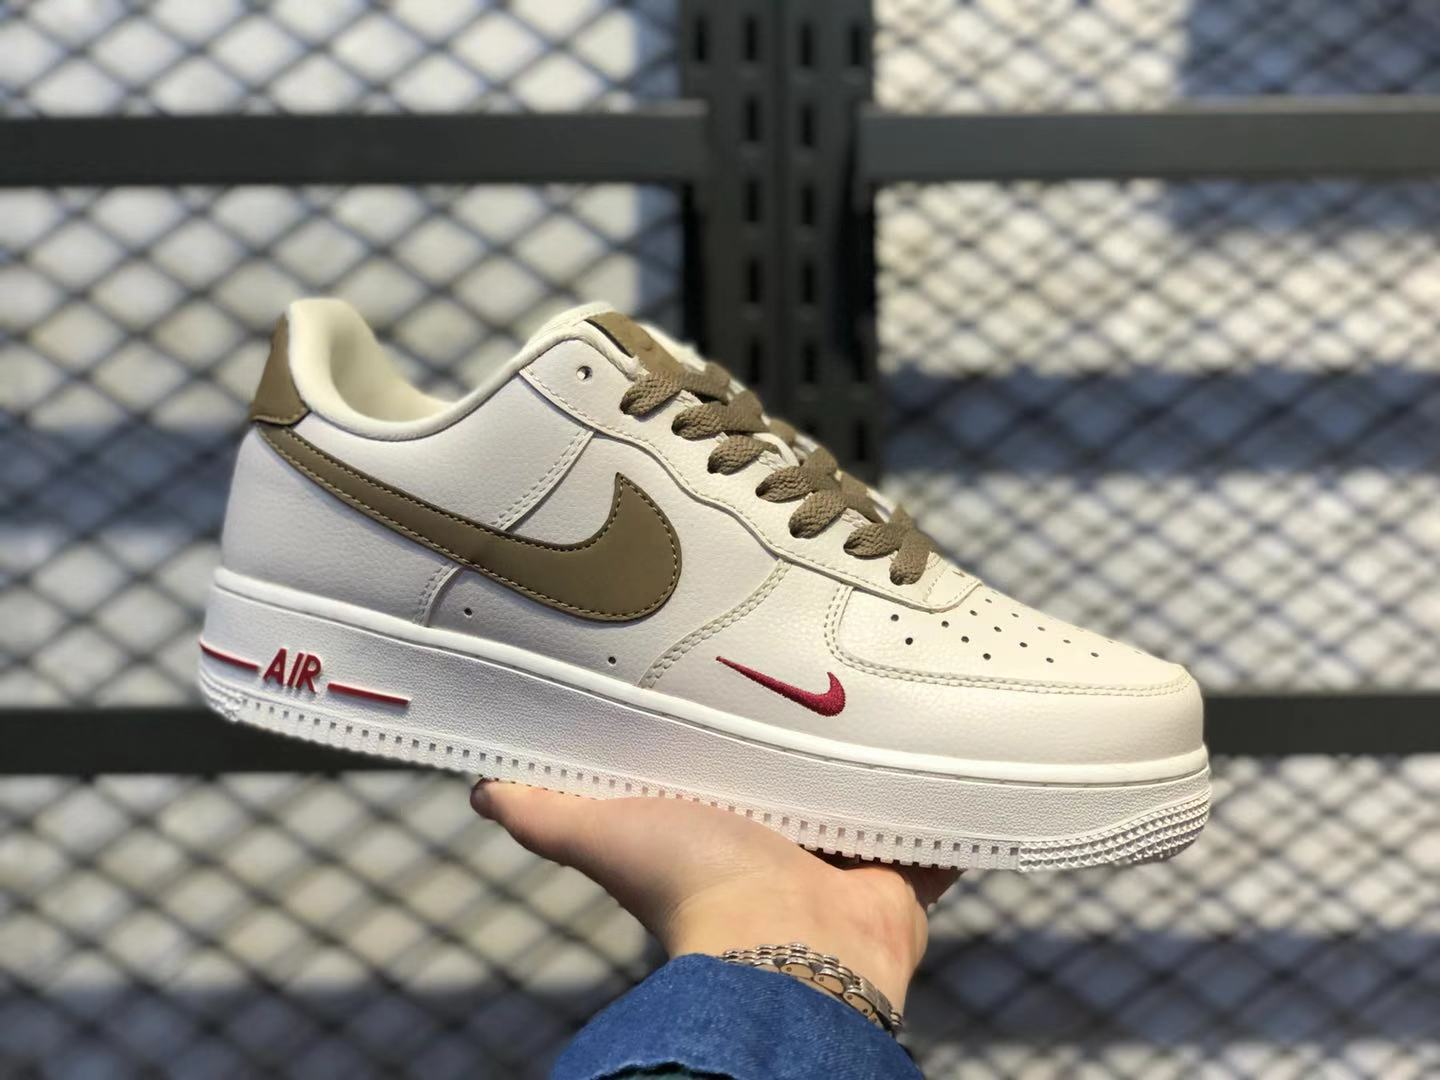 Nike WMNS Air Force 1 Low White/Brown-Red Casual Shoes For Sale 808788-996